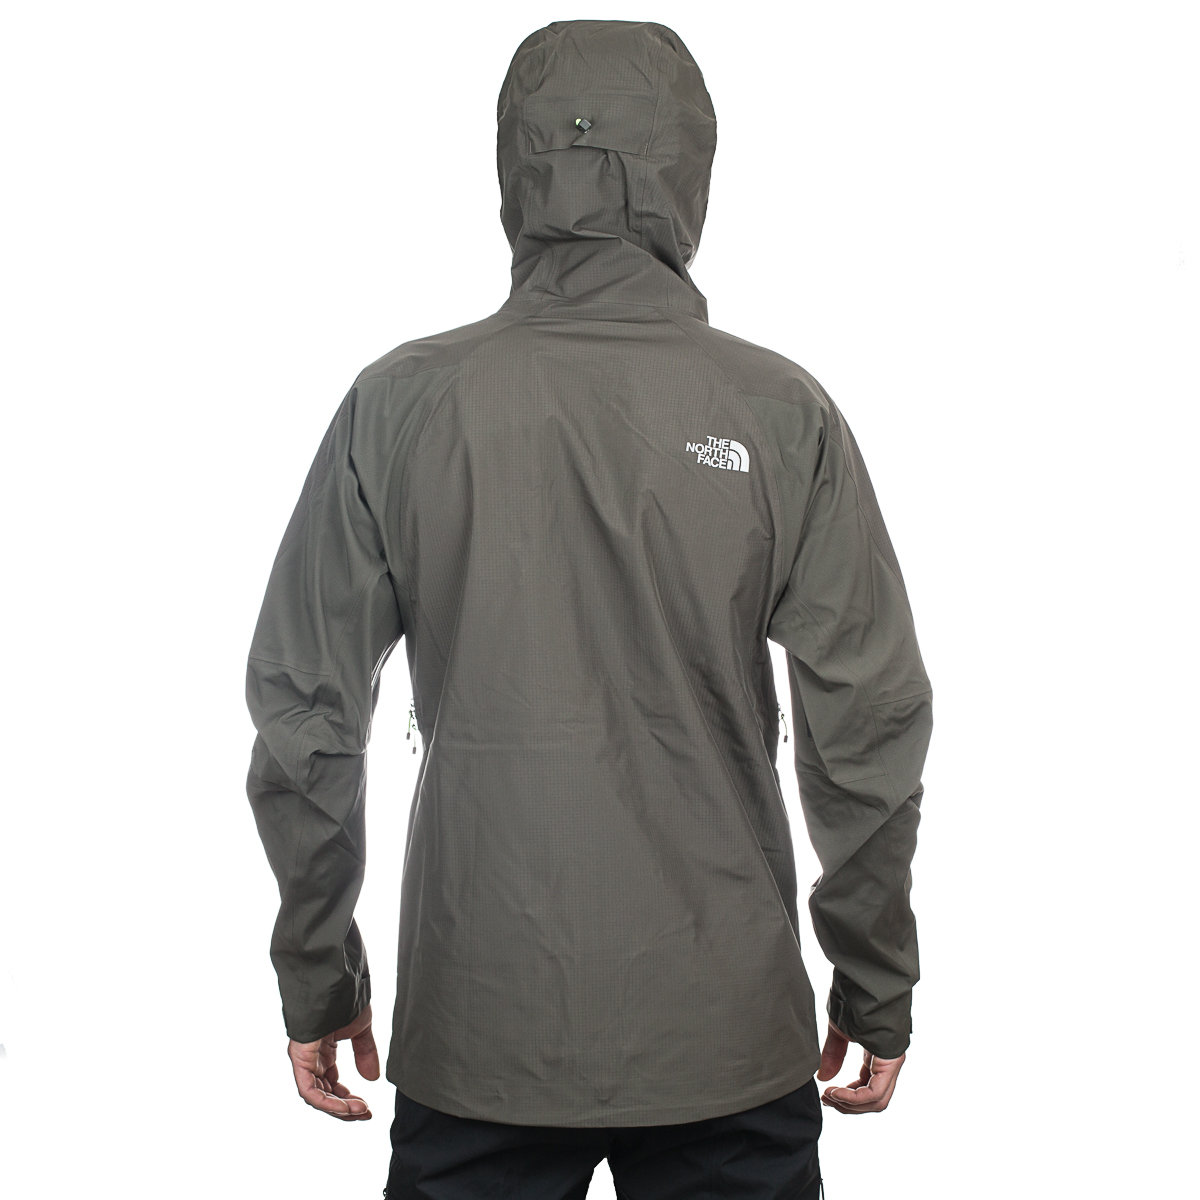 North Face Momentum Jacket